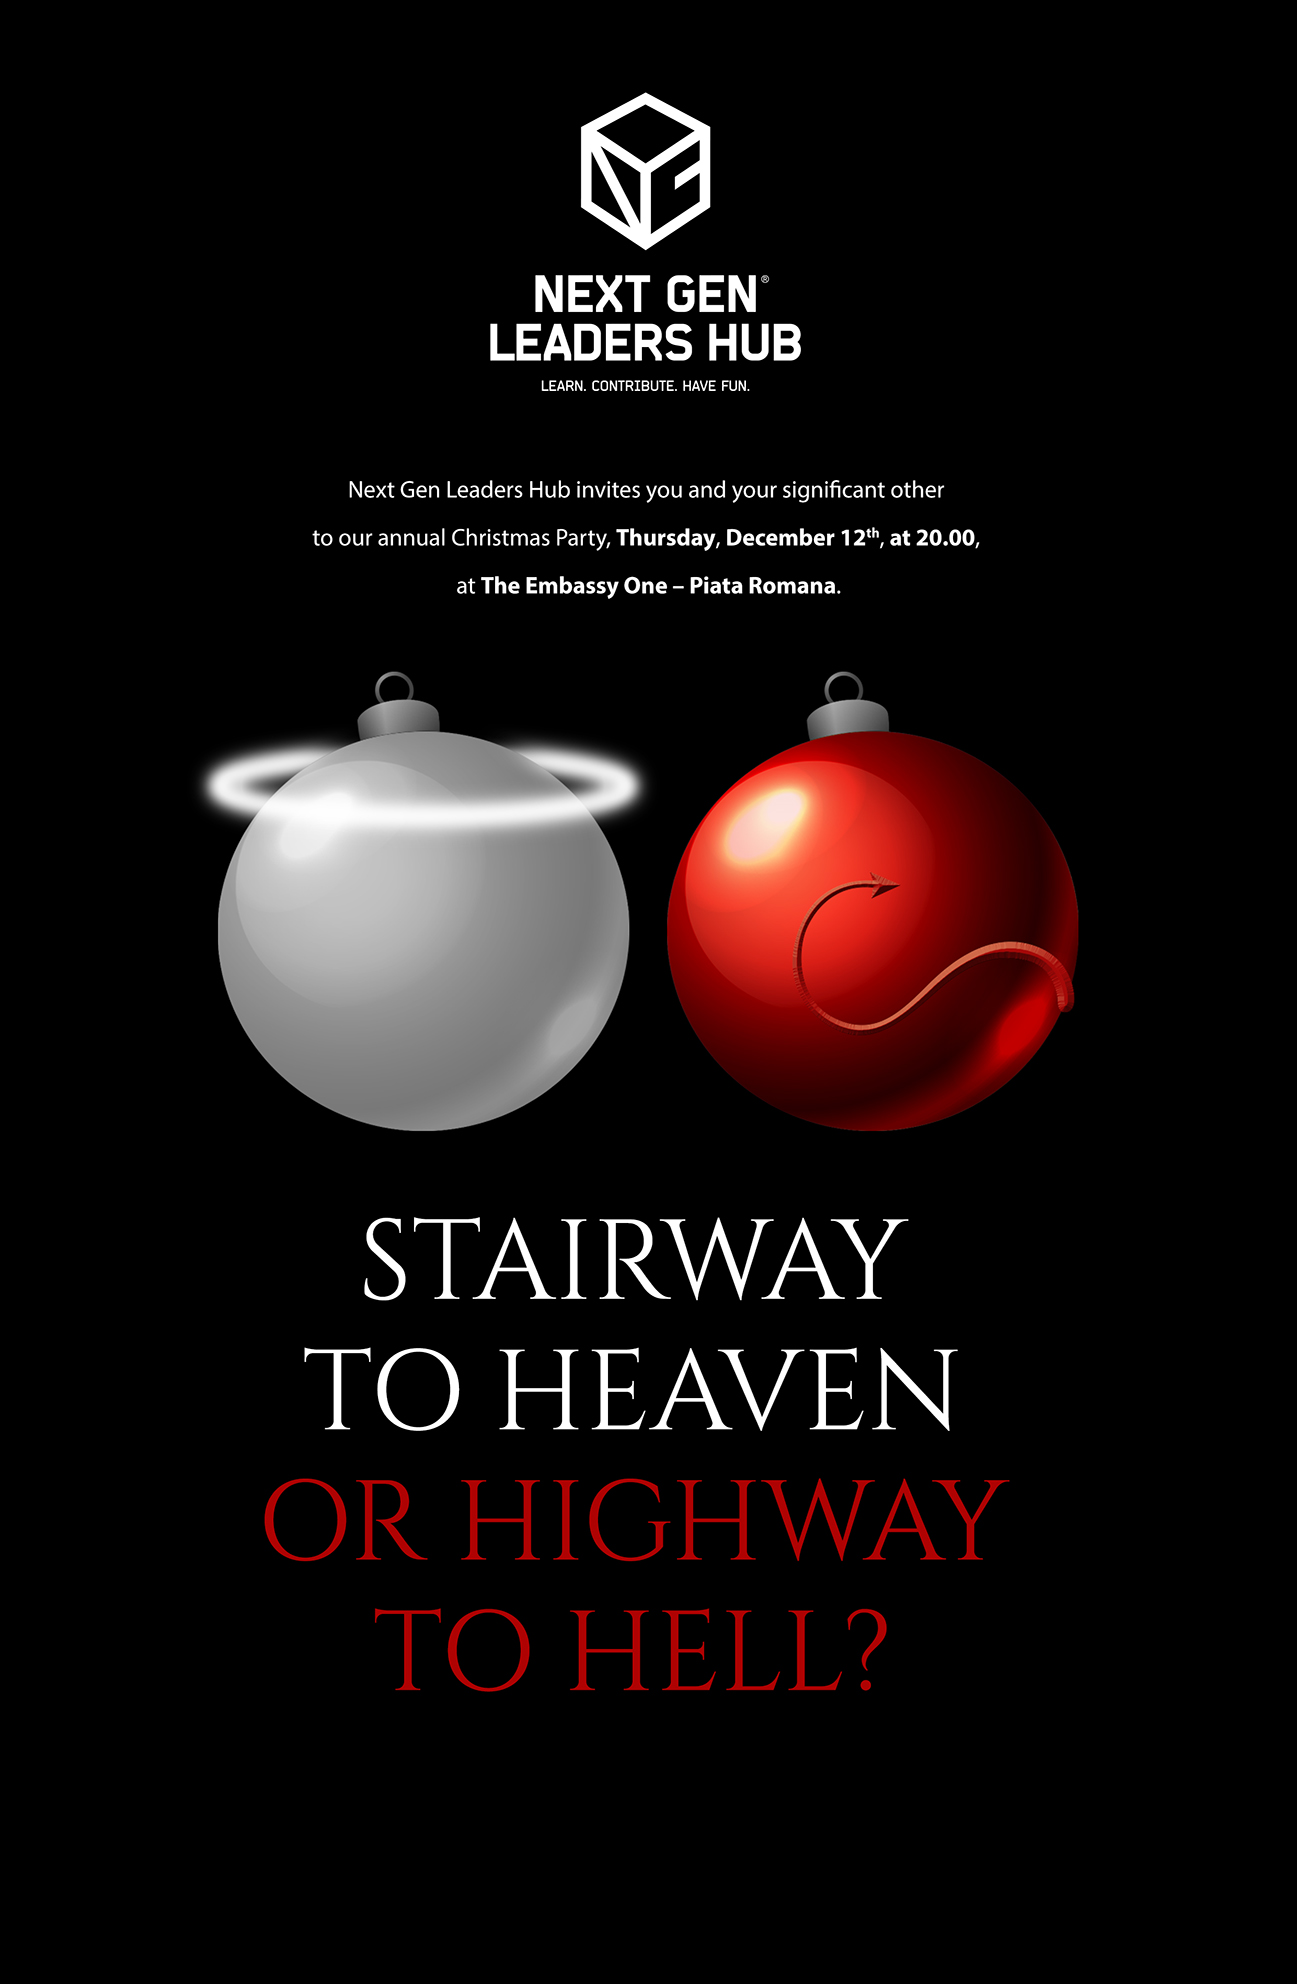 Christmas Party - Stairway to Heaven or Highway to Hell